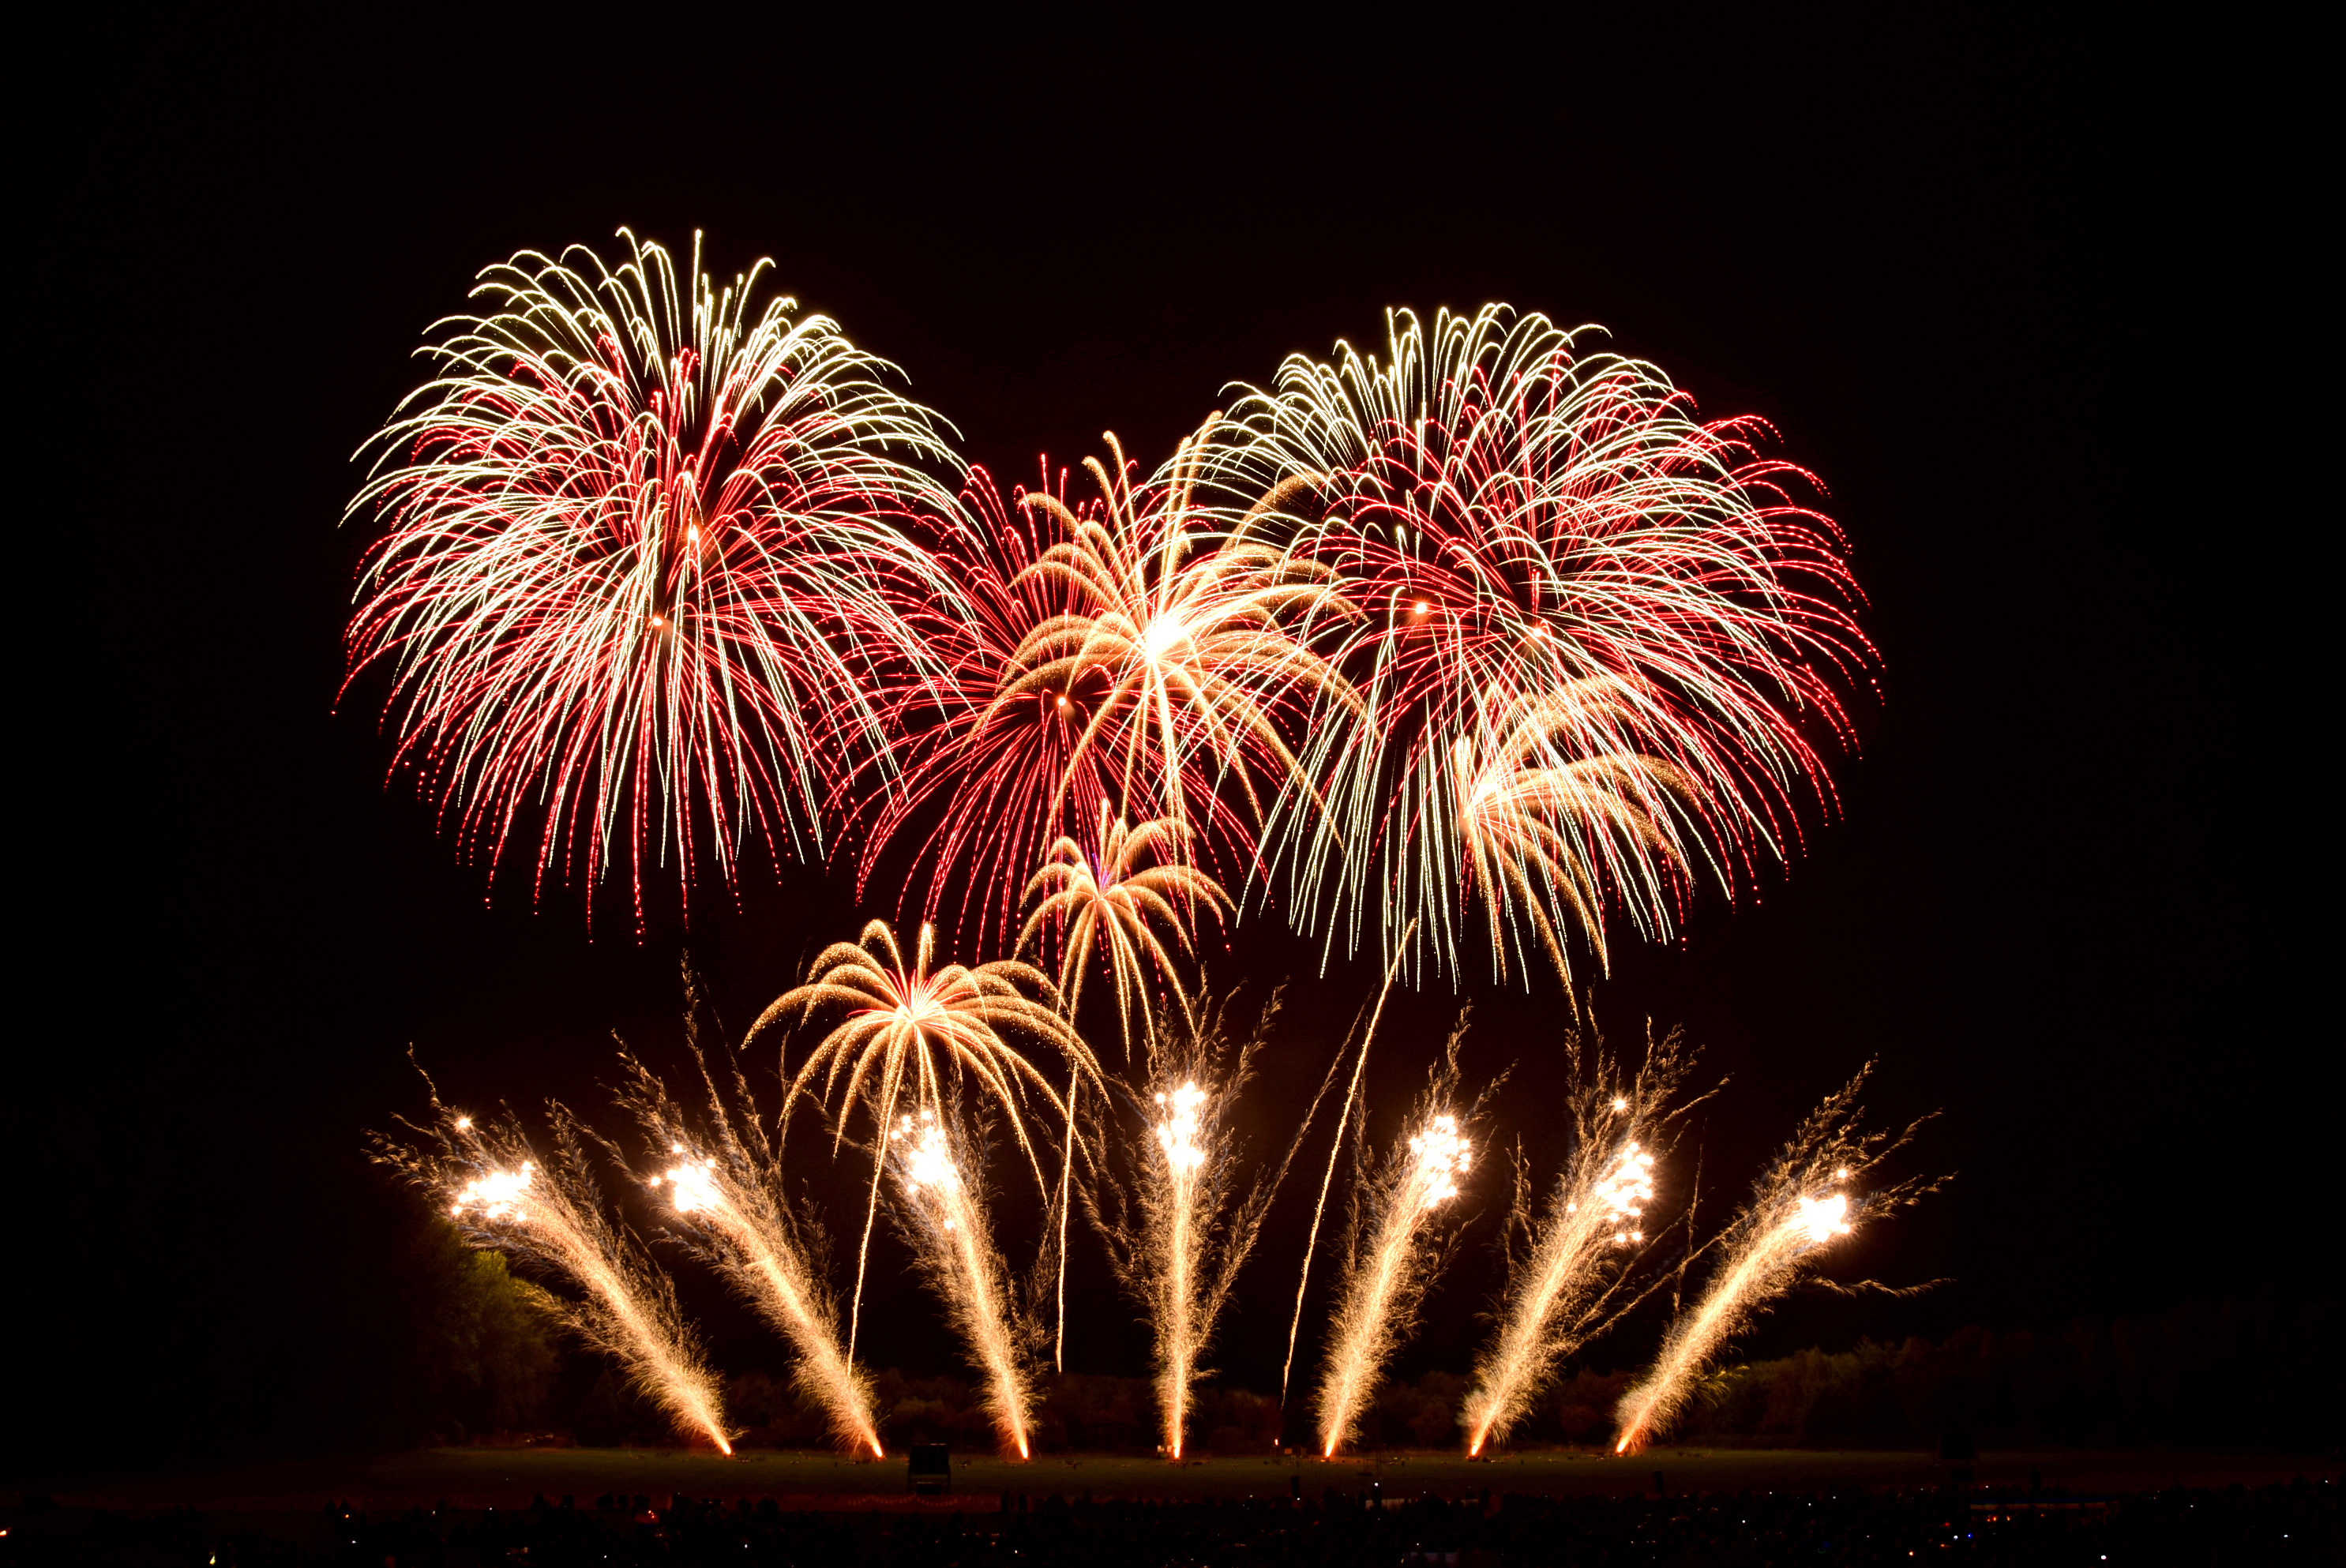 Dynamic Fireworks | Fireworks Display | Festival of Fireworks